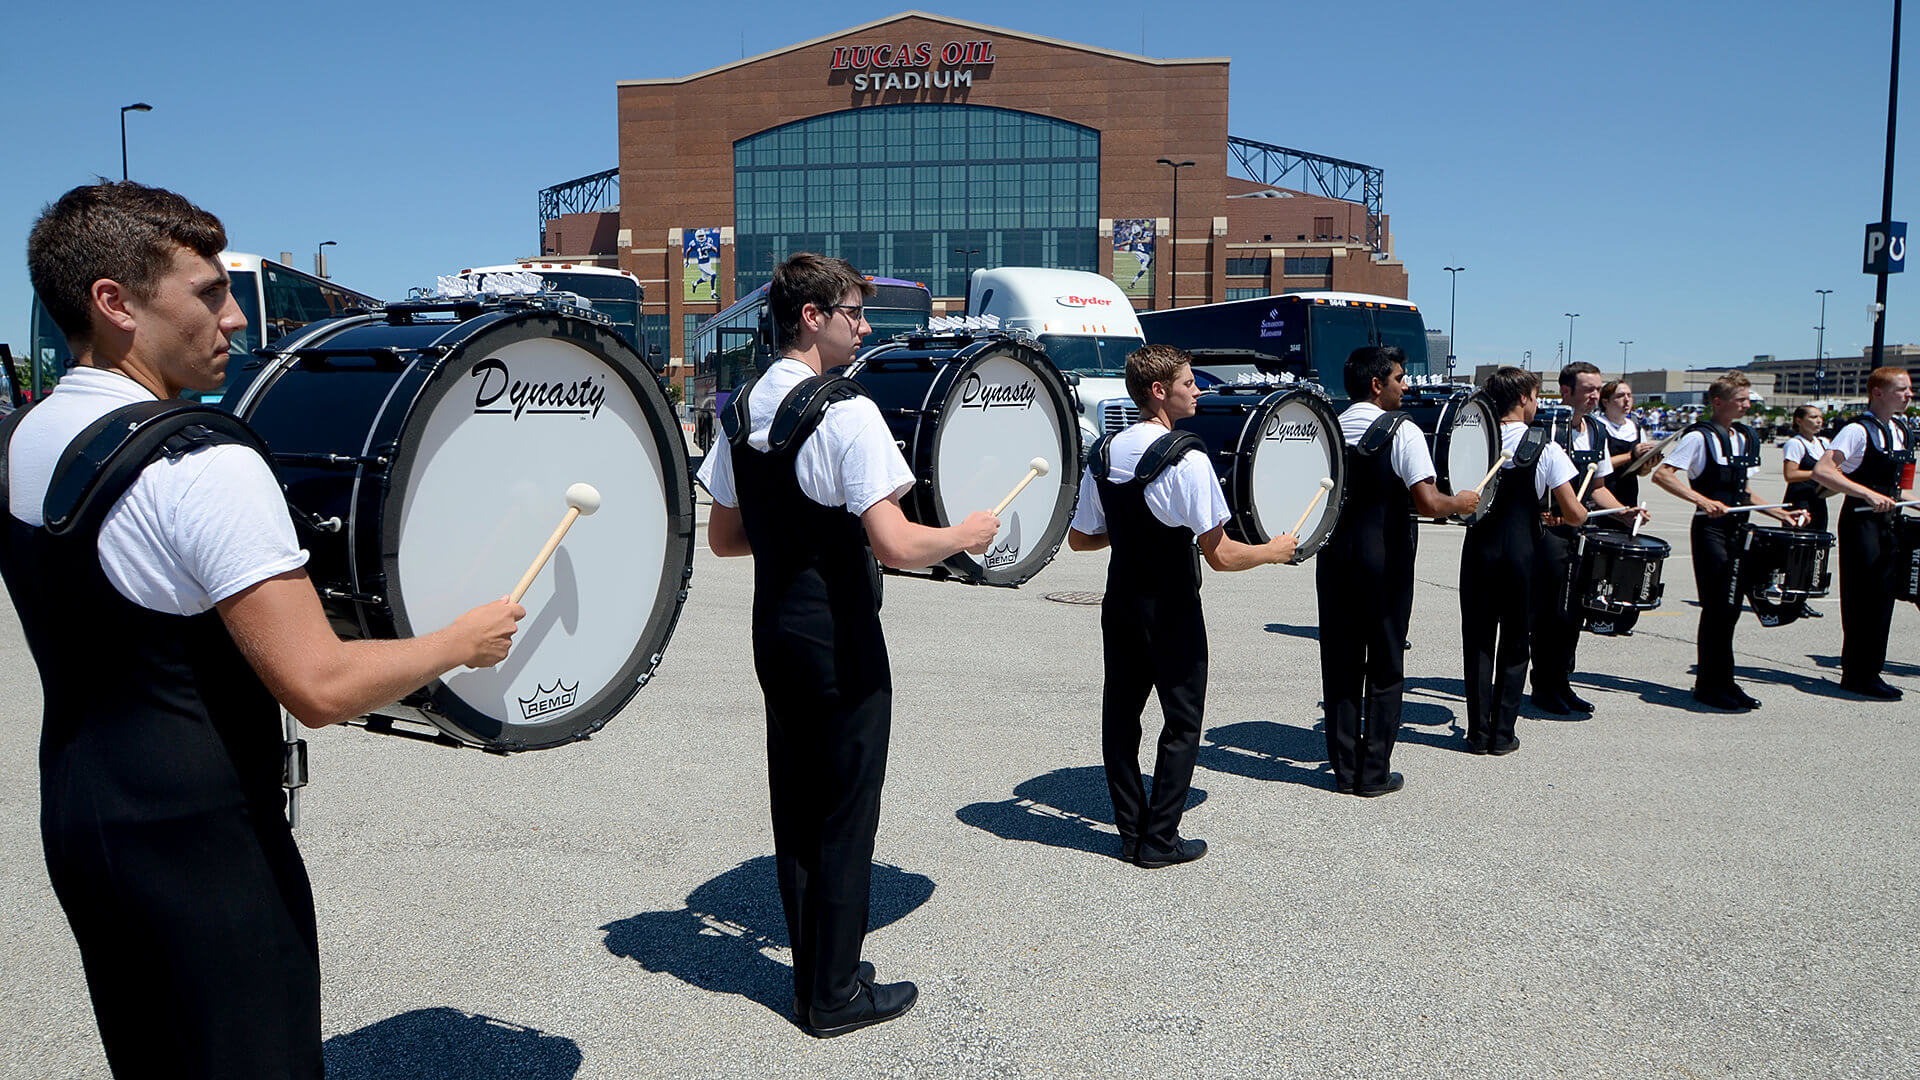 the road to drum corps international dci world championships at lucas oil stadium Activity drum and bugle corps founded 1972 no of corps 58 (world/open) classes.